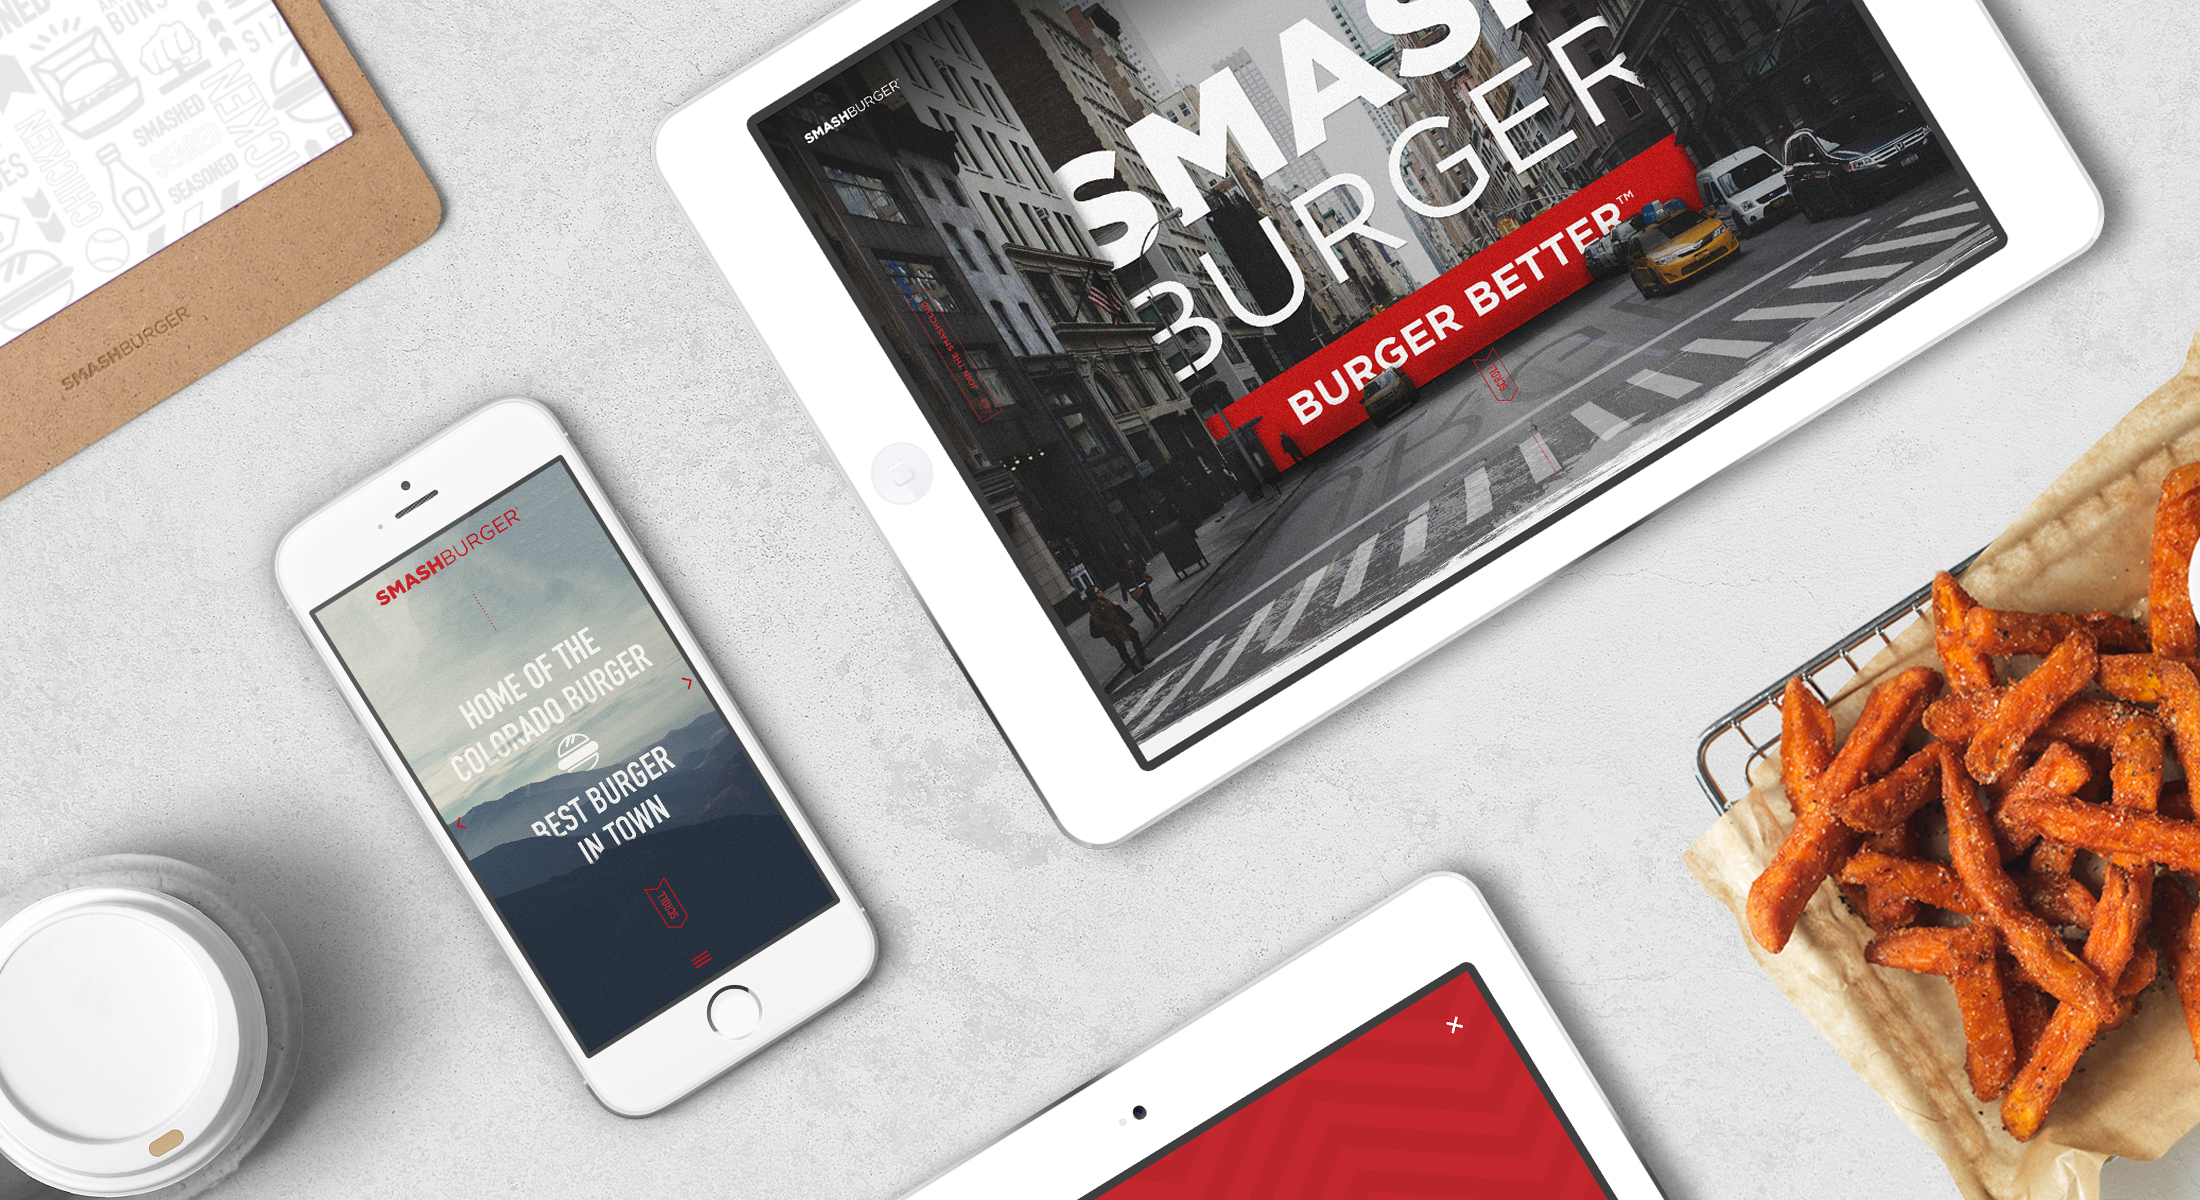 Smash Burger website design iPad iPhone